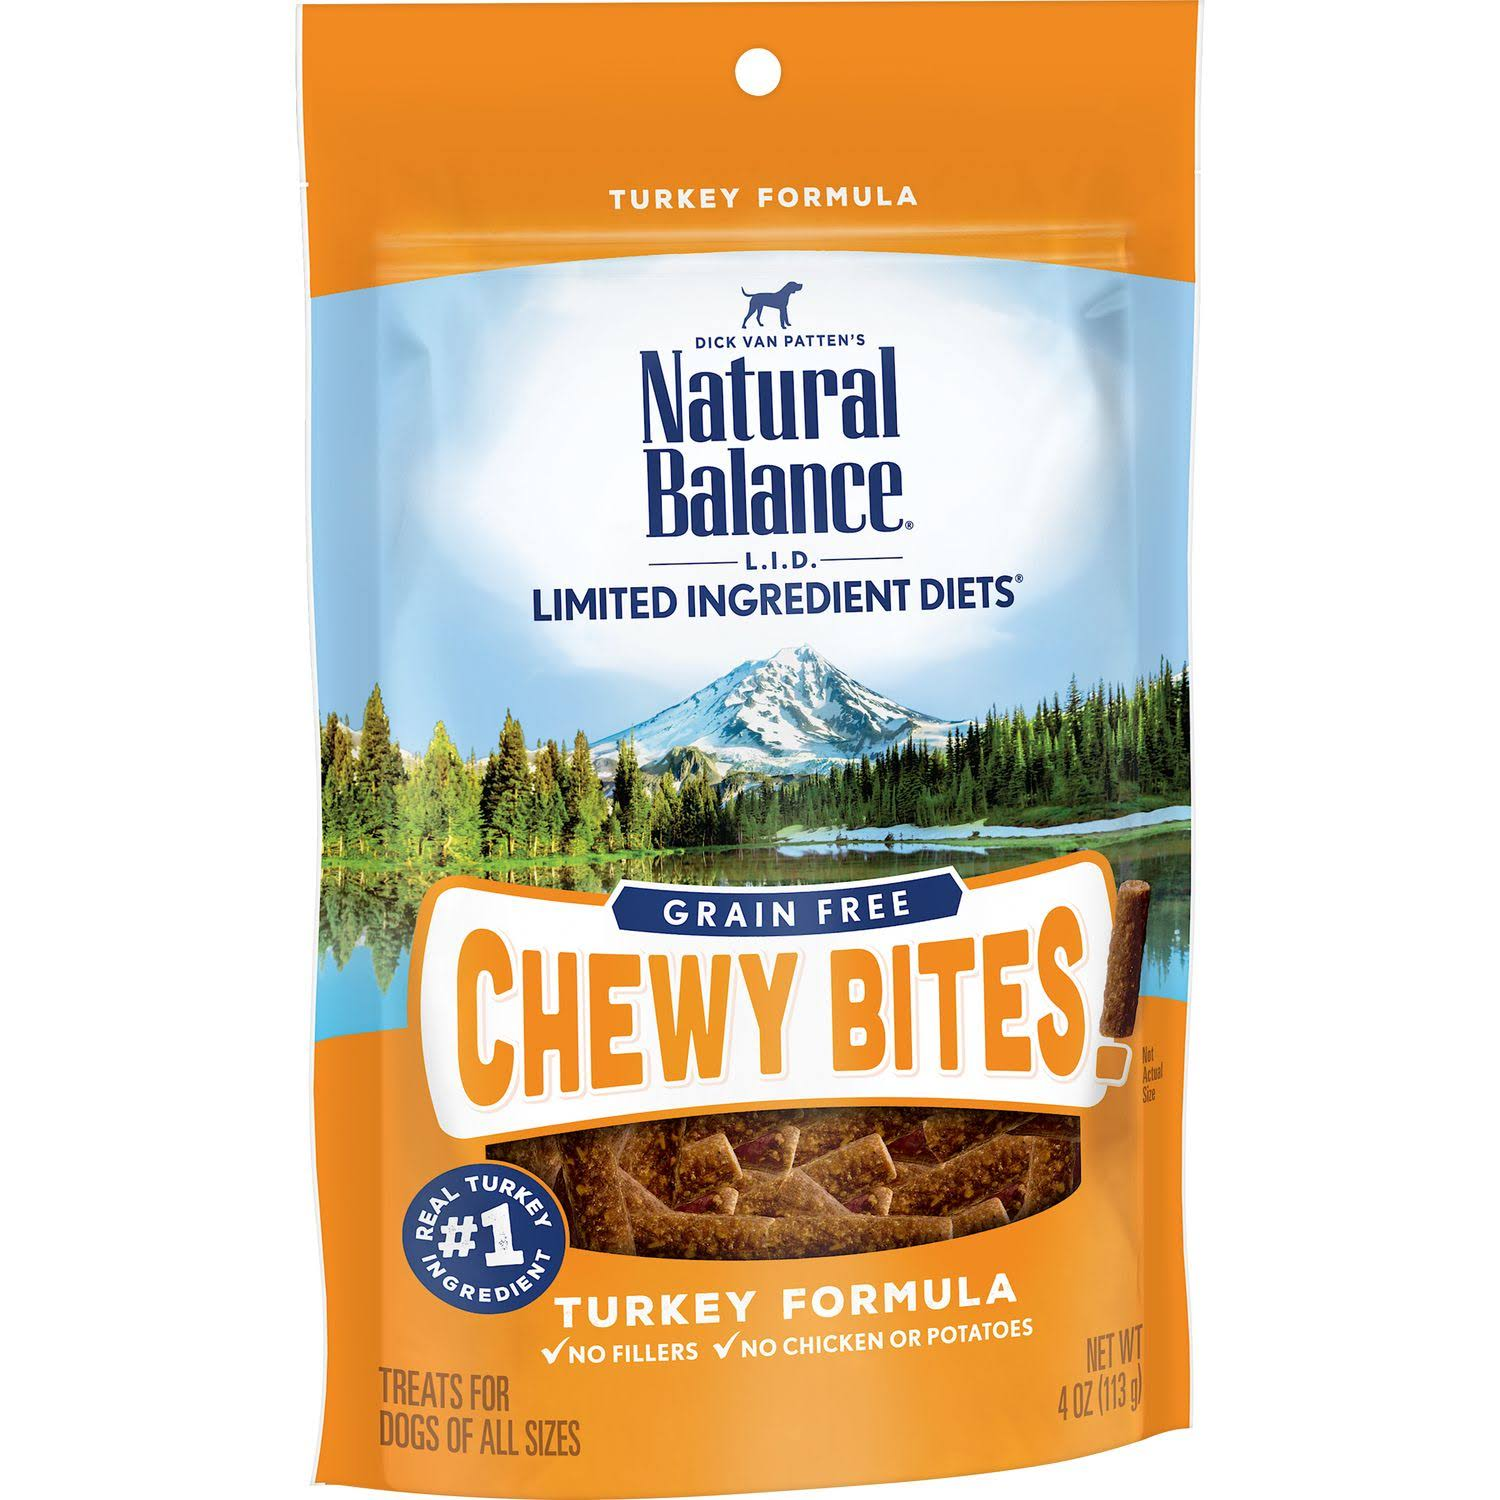 Natural Balance L.I.D. Limited Ingredient Diets Grain Free Chewy Bites Turkey Formula Dog Treats 4oz